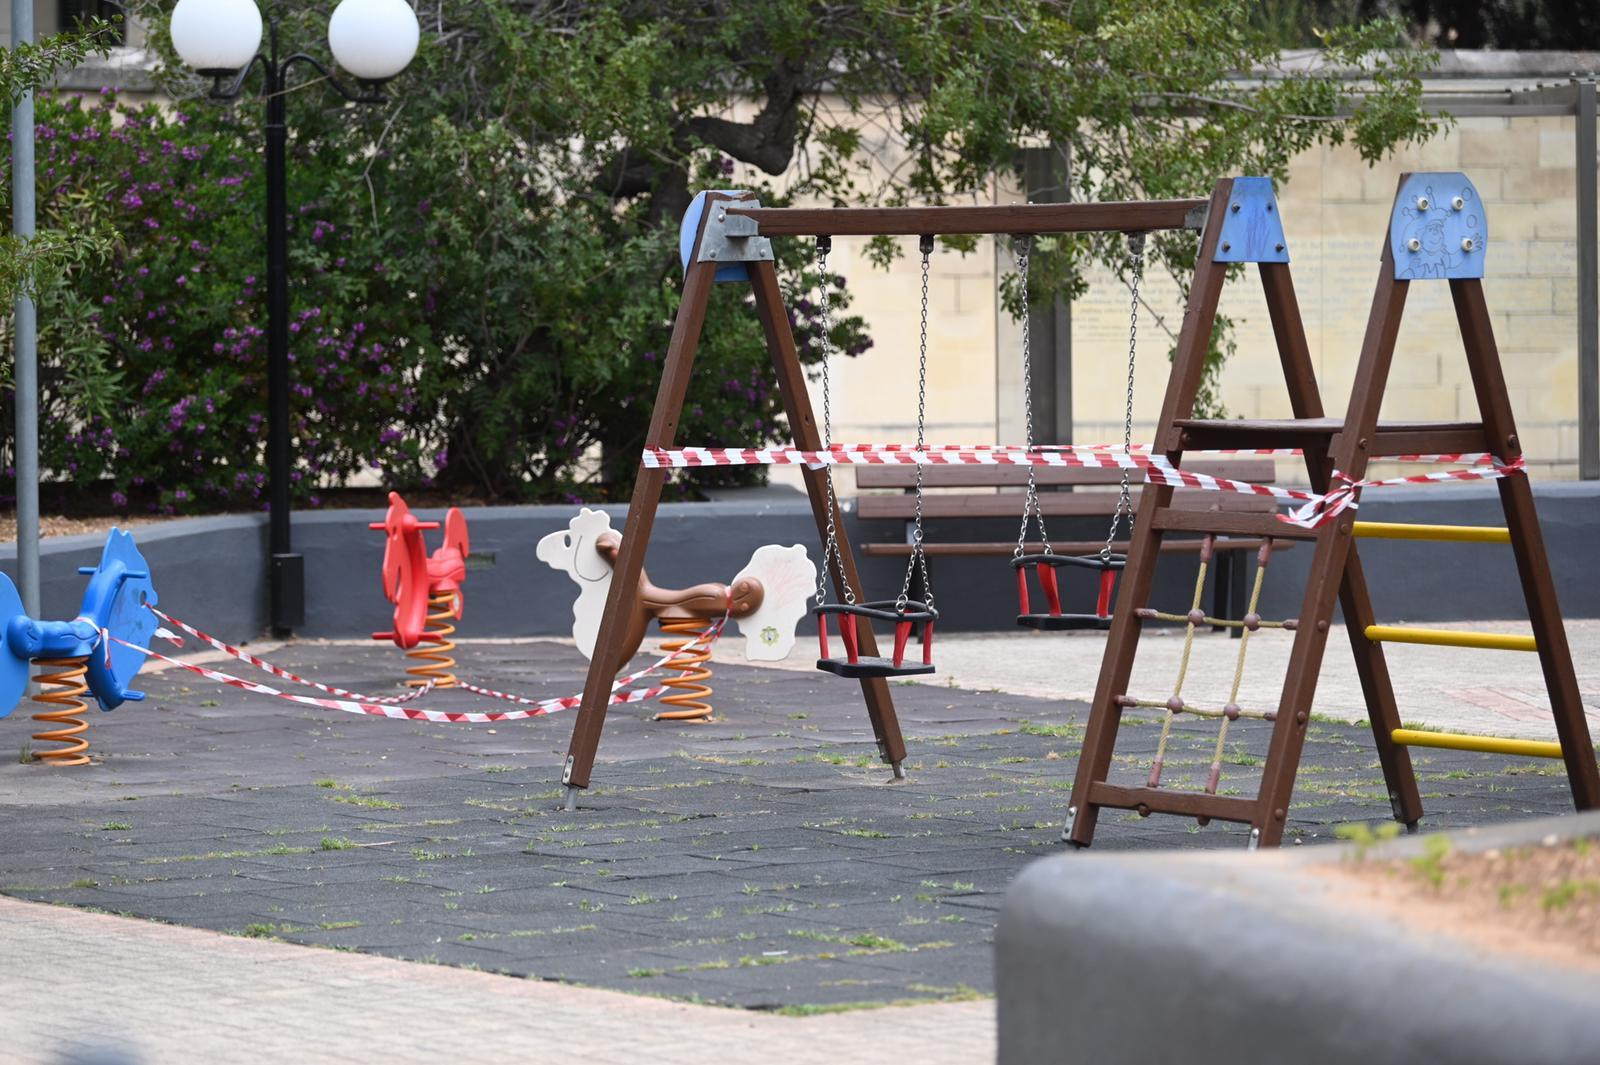 Playgrounds have been closed as a precaution. Photo: Mark Zammit Cordina